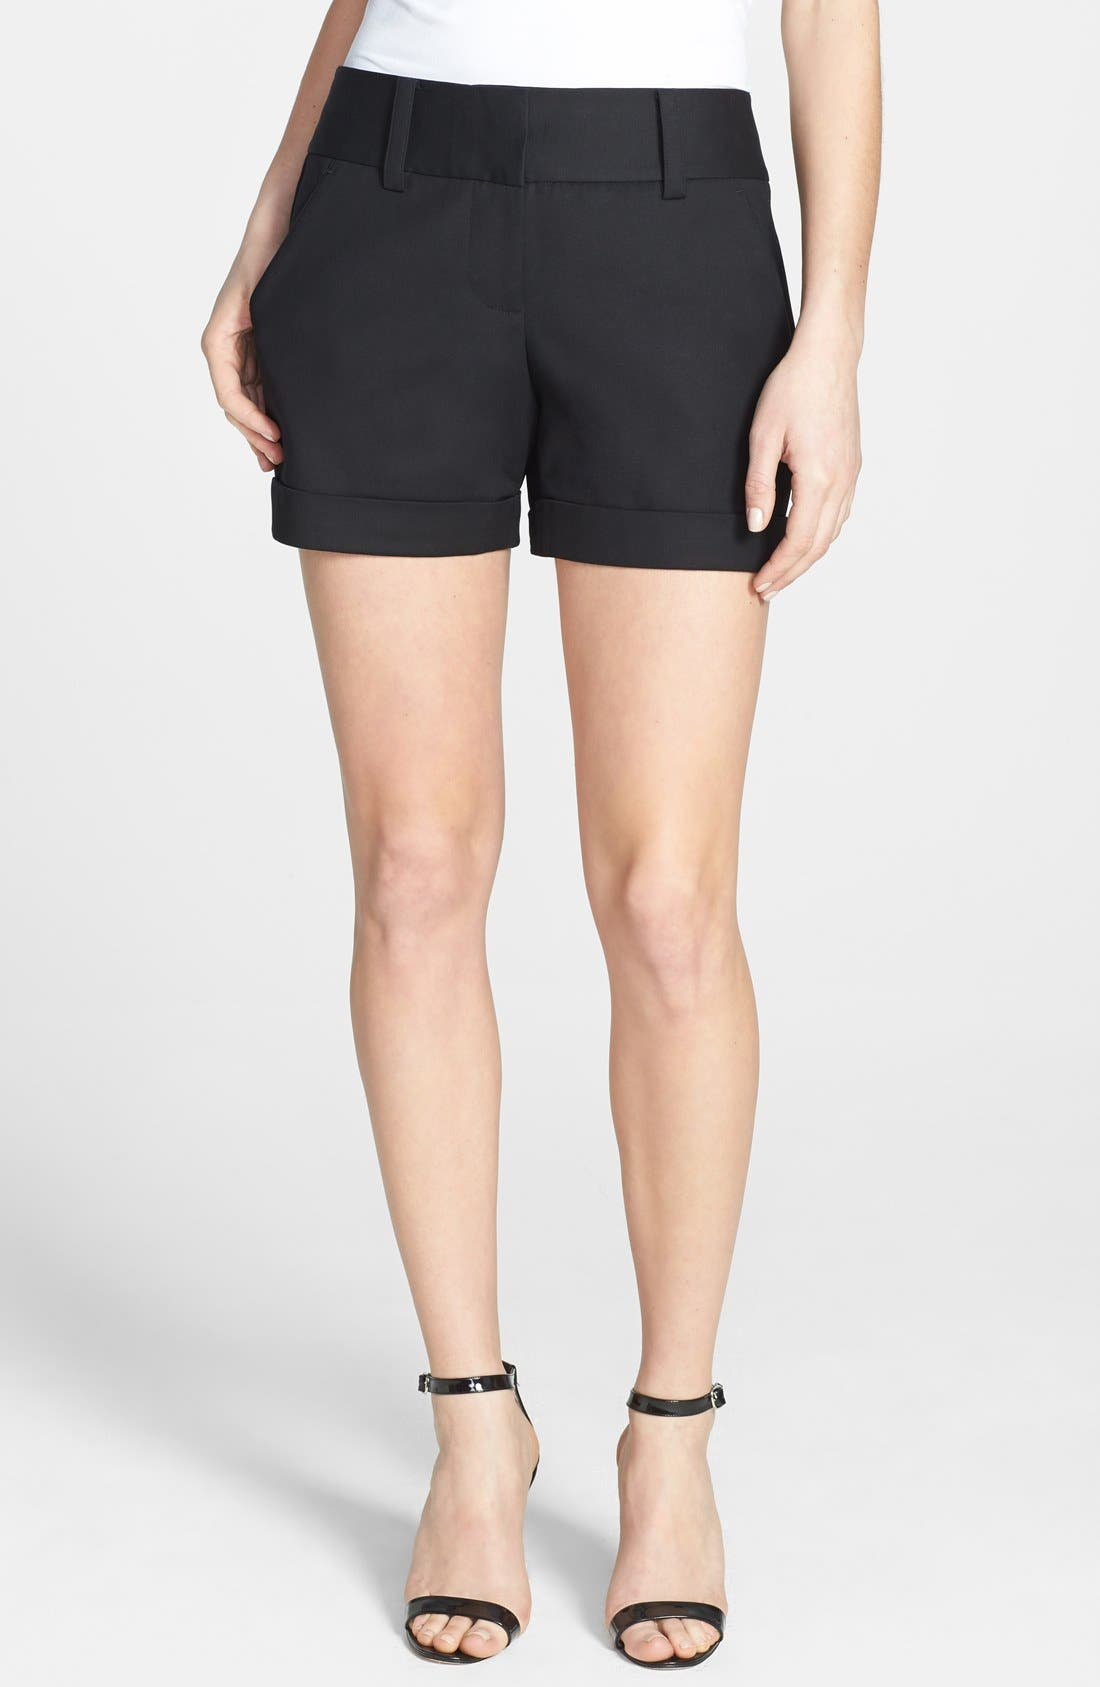 Alternate Image 1 Selected - Vince Camuto Flat Front Cuff Stretch Cotton Shorts (Regular & Petite)